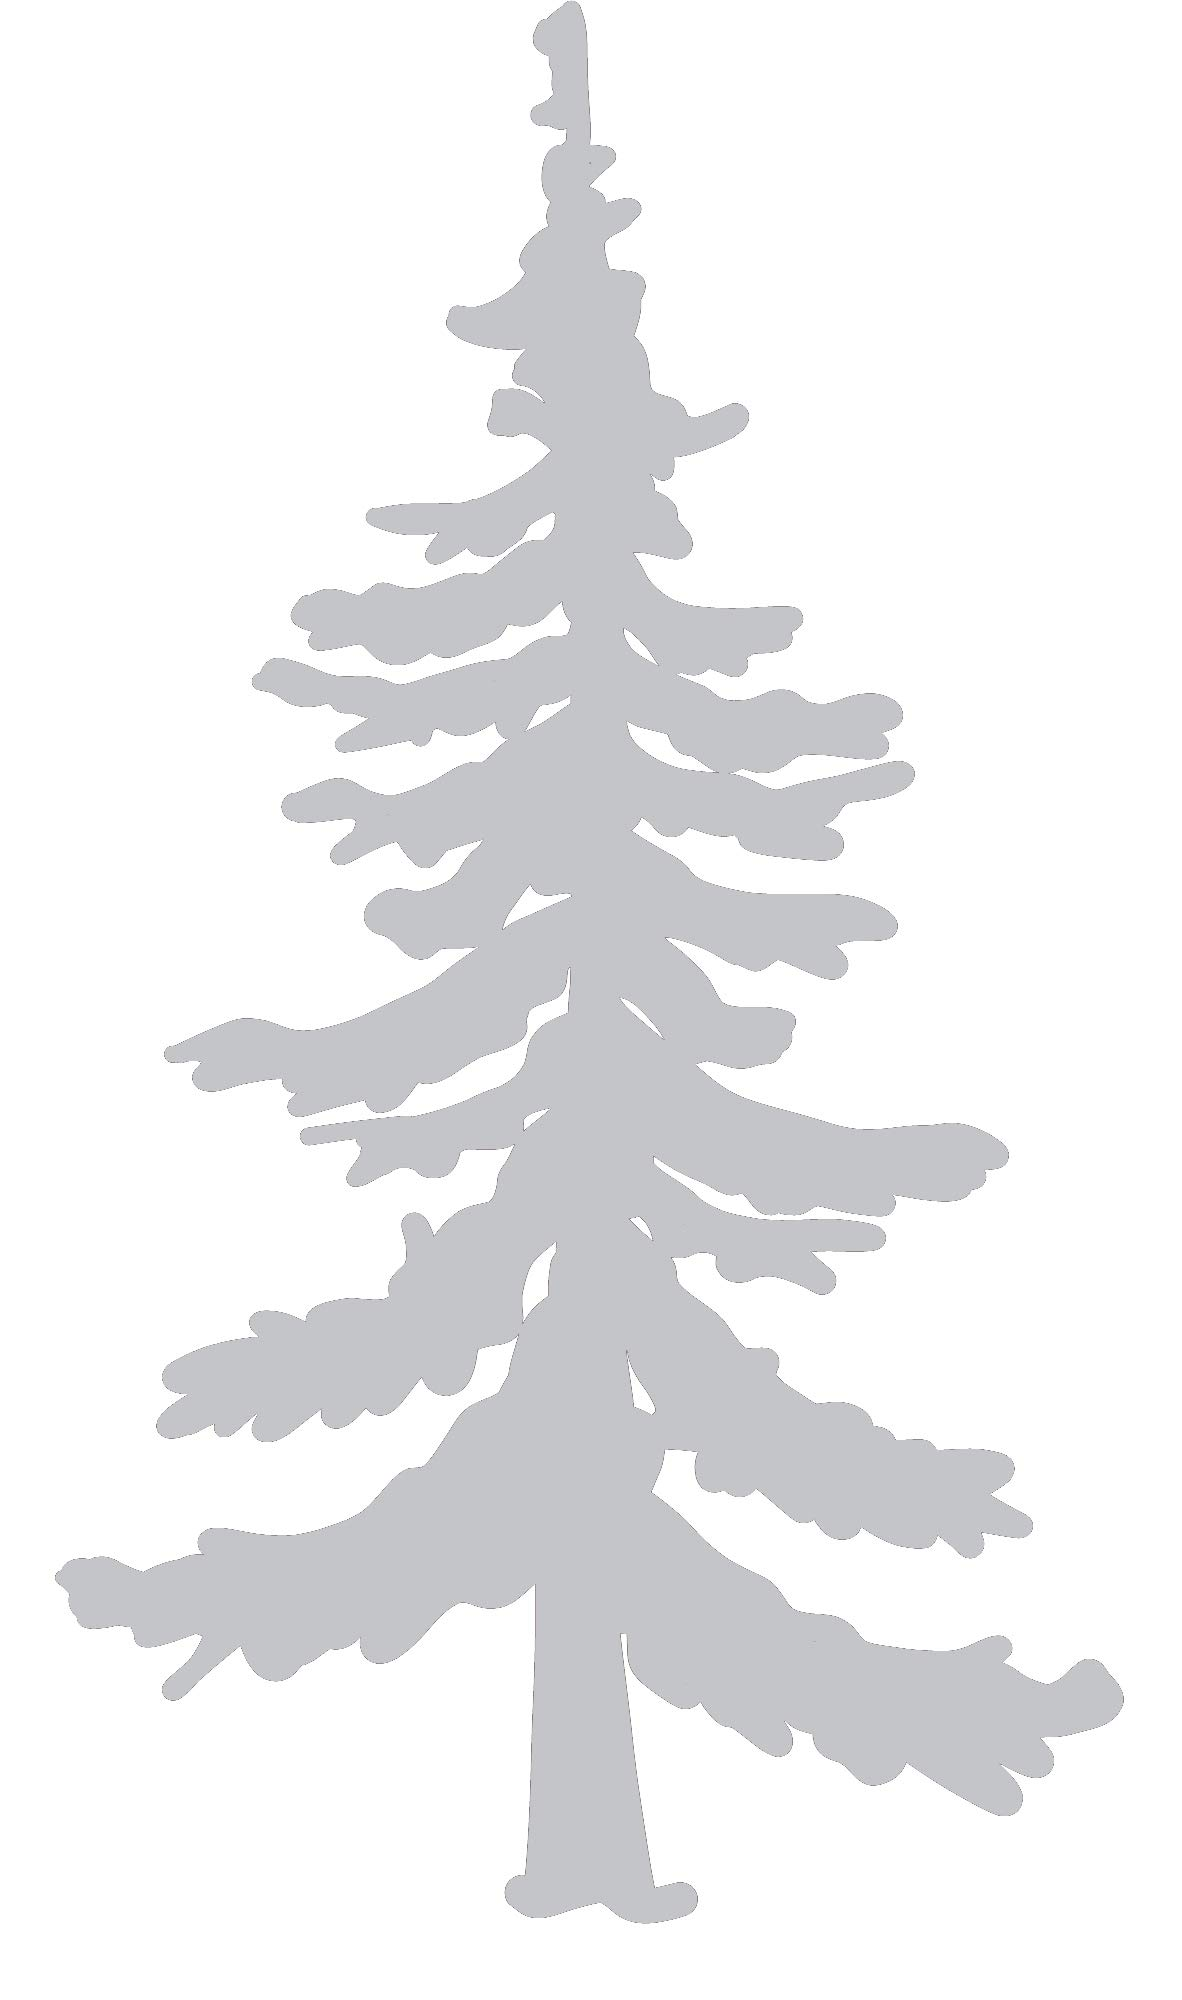 Pine Tree Vinyl Decal - 8 Inches - For Cars, Trucks, Windows, Laptops, Tablets, Outdoor-Grade 2.5mil Thick Vinyl - Silver Gray